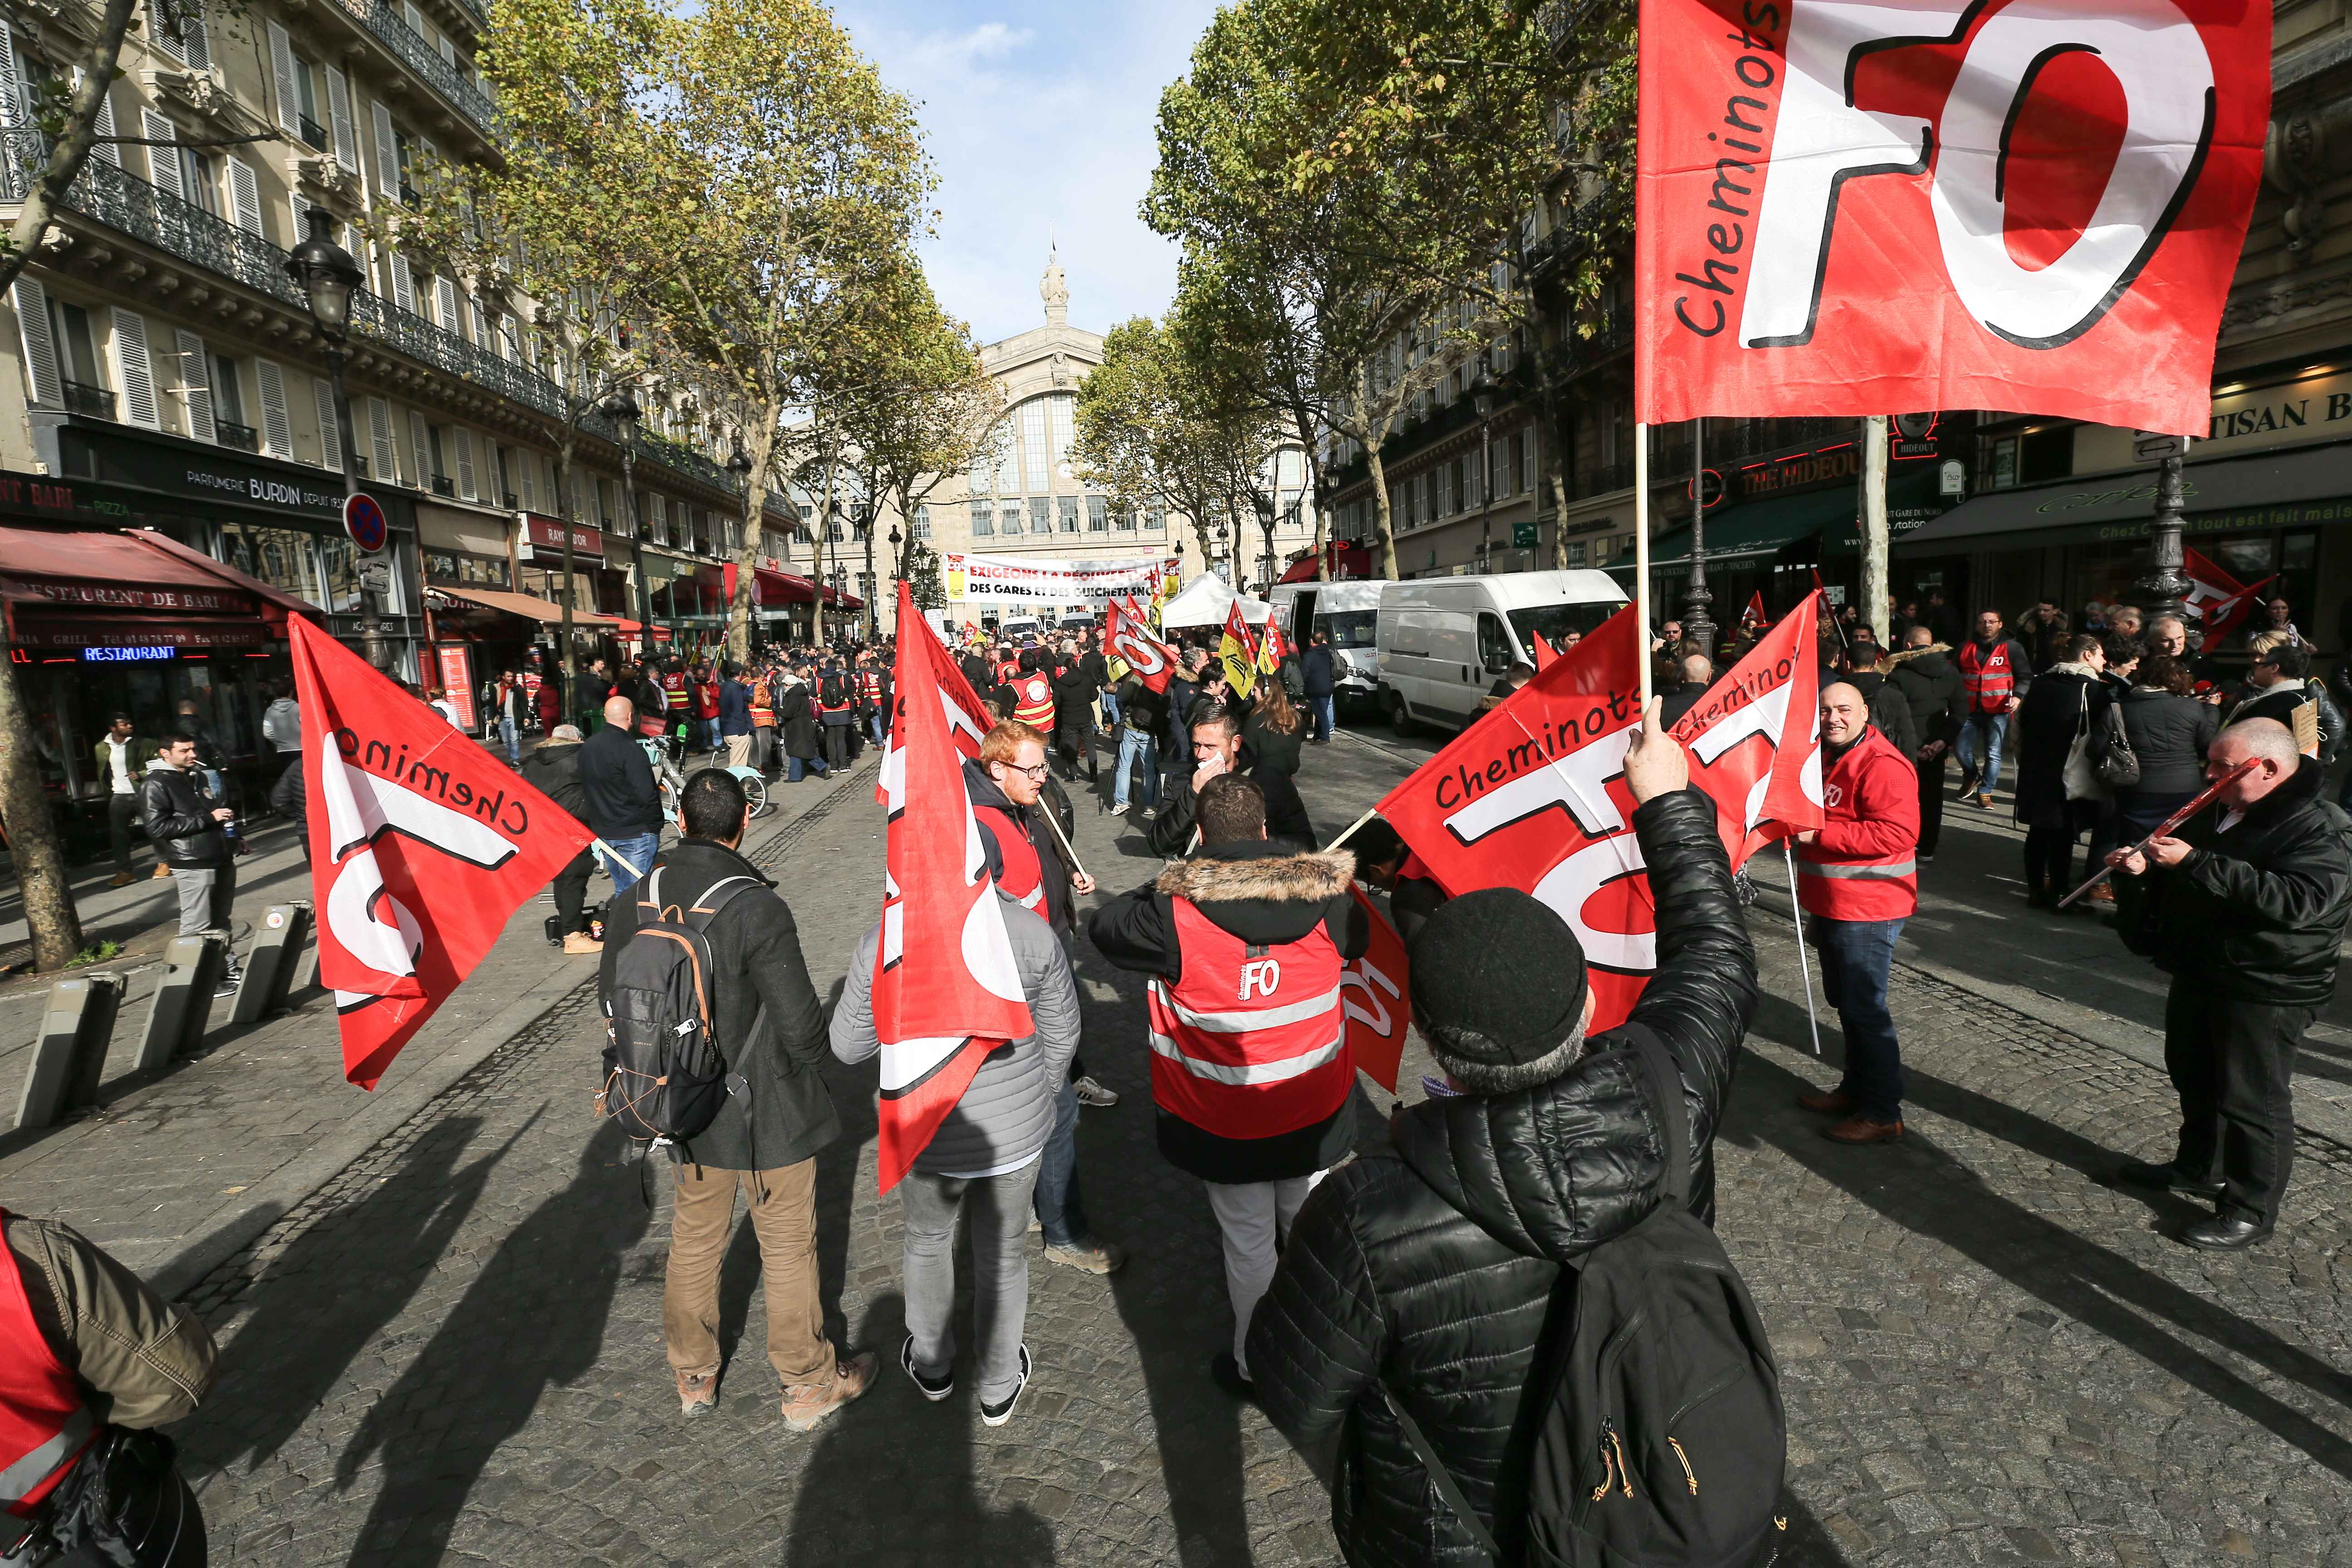 The FO union railway workers gather during a demonstration of employees of the state-owned rail operator SNCF called by CG union on November 5, 2019 in front of the Gare du Nord in Paris to defend SNCF's internal public service, denounce their living and w